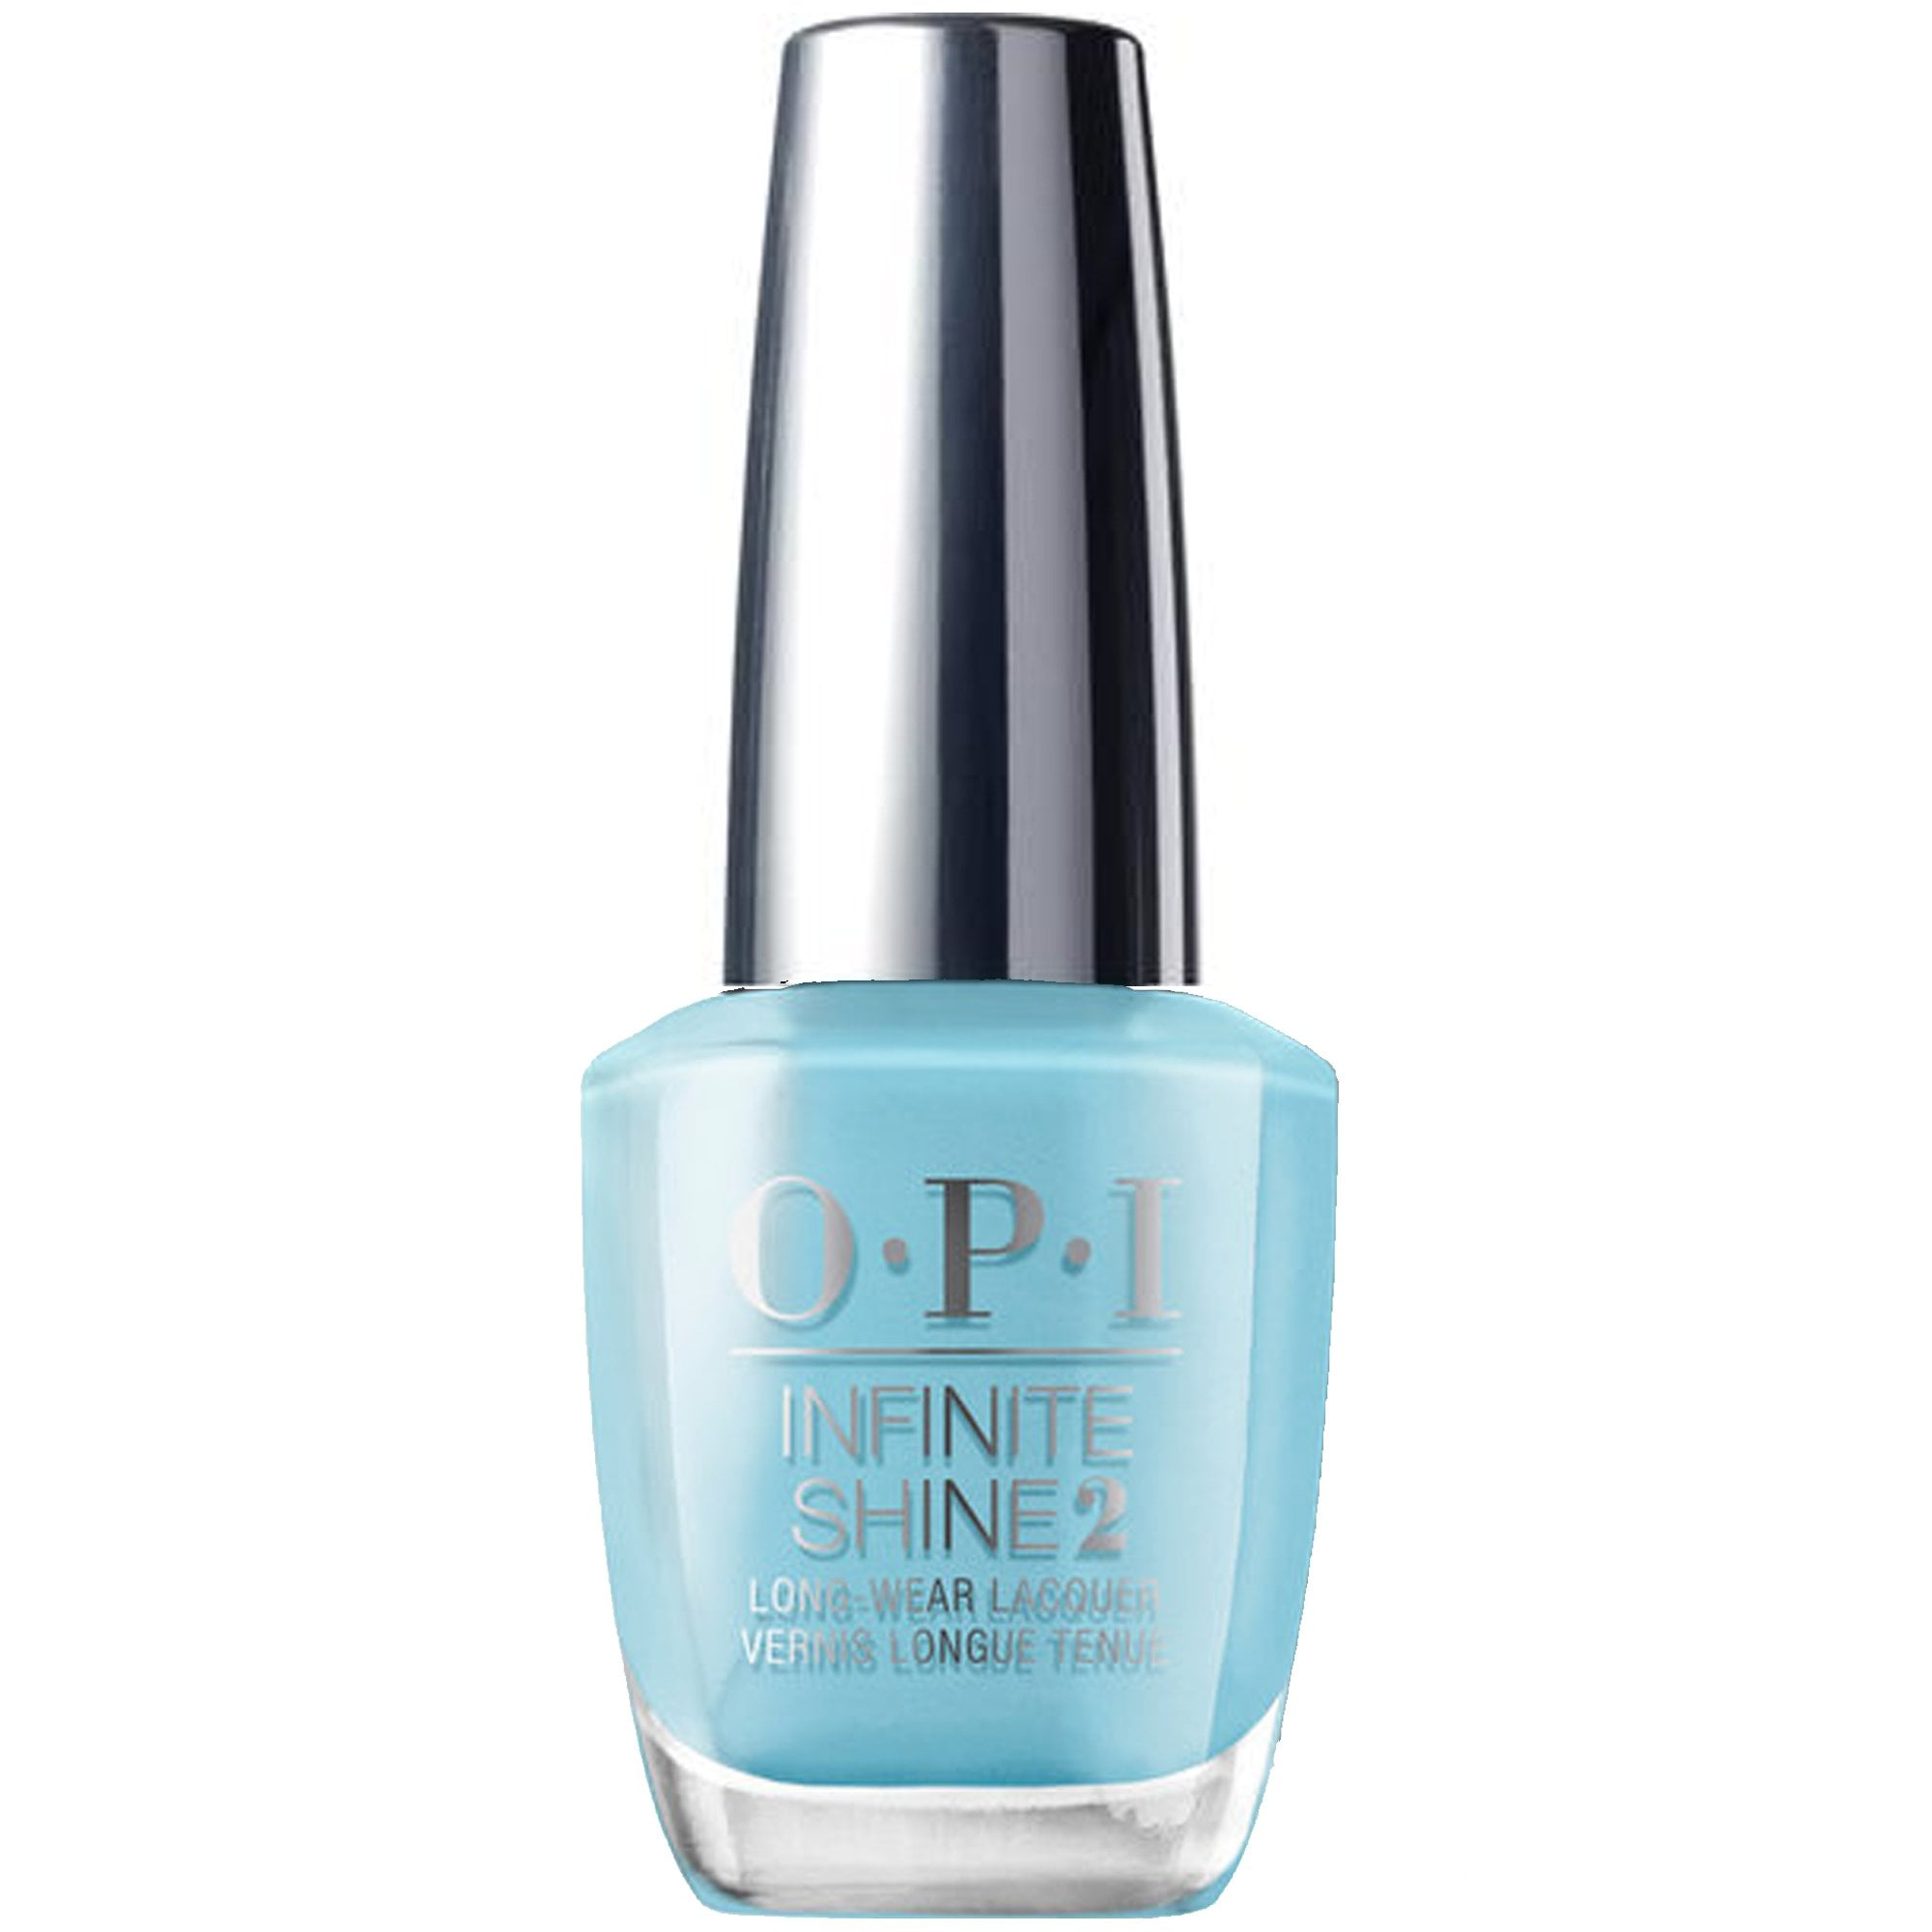 Opi Infinite Shine To Infinity Blue Yond Neon 2019 Nail Polish Collection Isl18 15ml